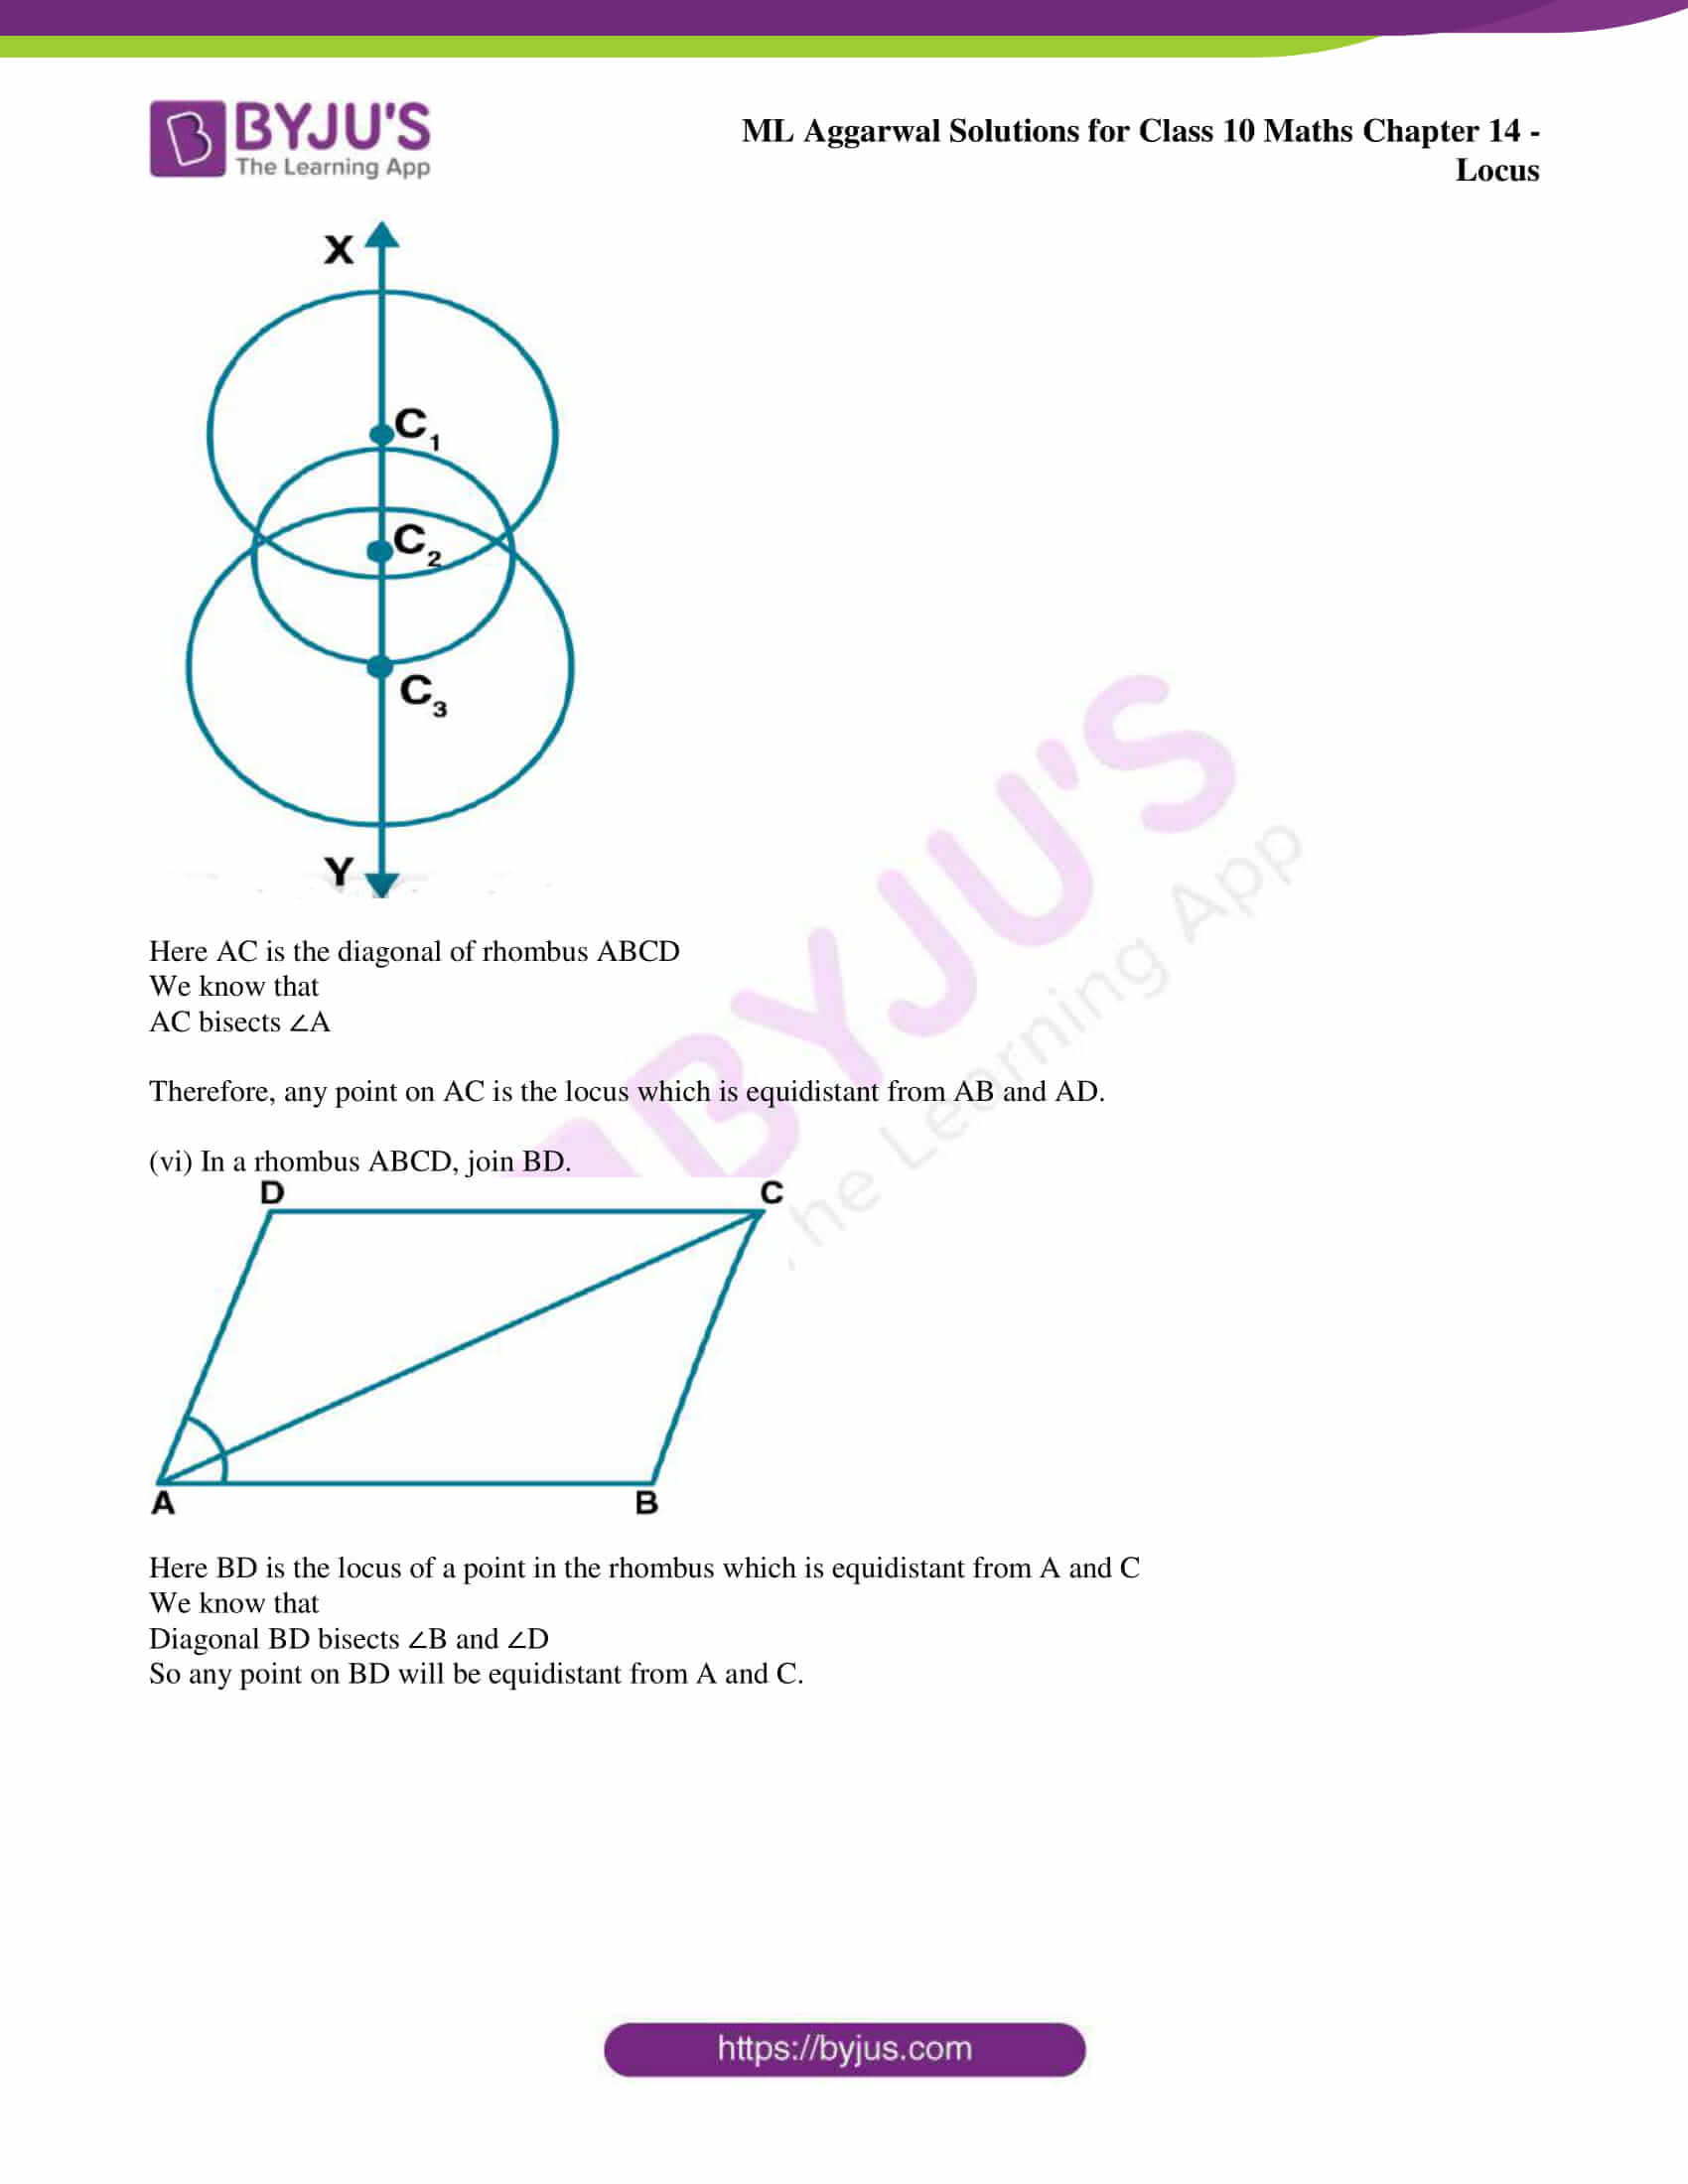 ml aggarwal solutions for class 10 maths chapter 14 05